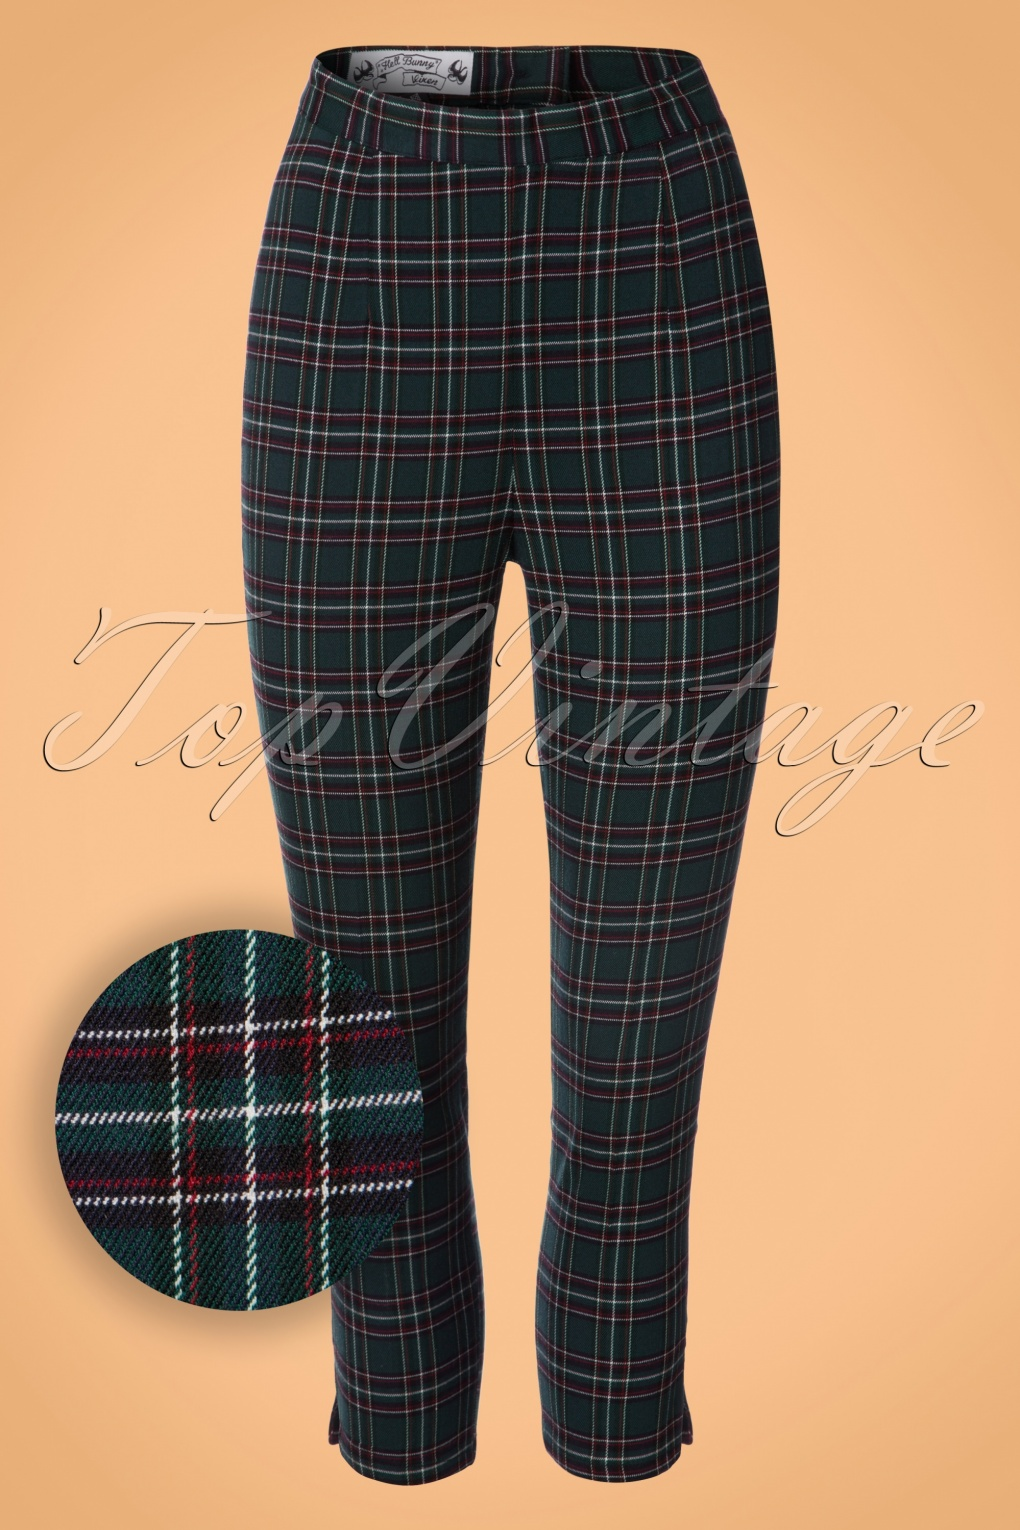 Women's 1960s Style Pants 50s Peebles Tartan Cigarette Trousers in Green £27.25 AT vintagedancer.com